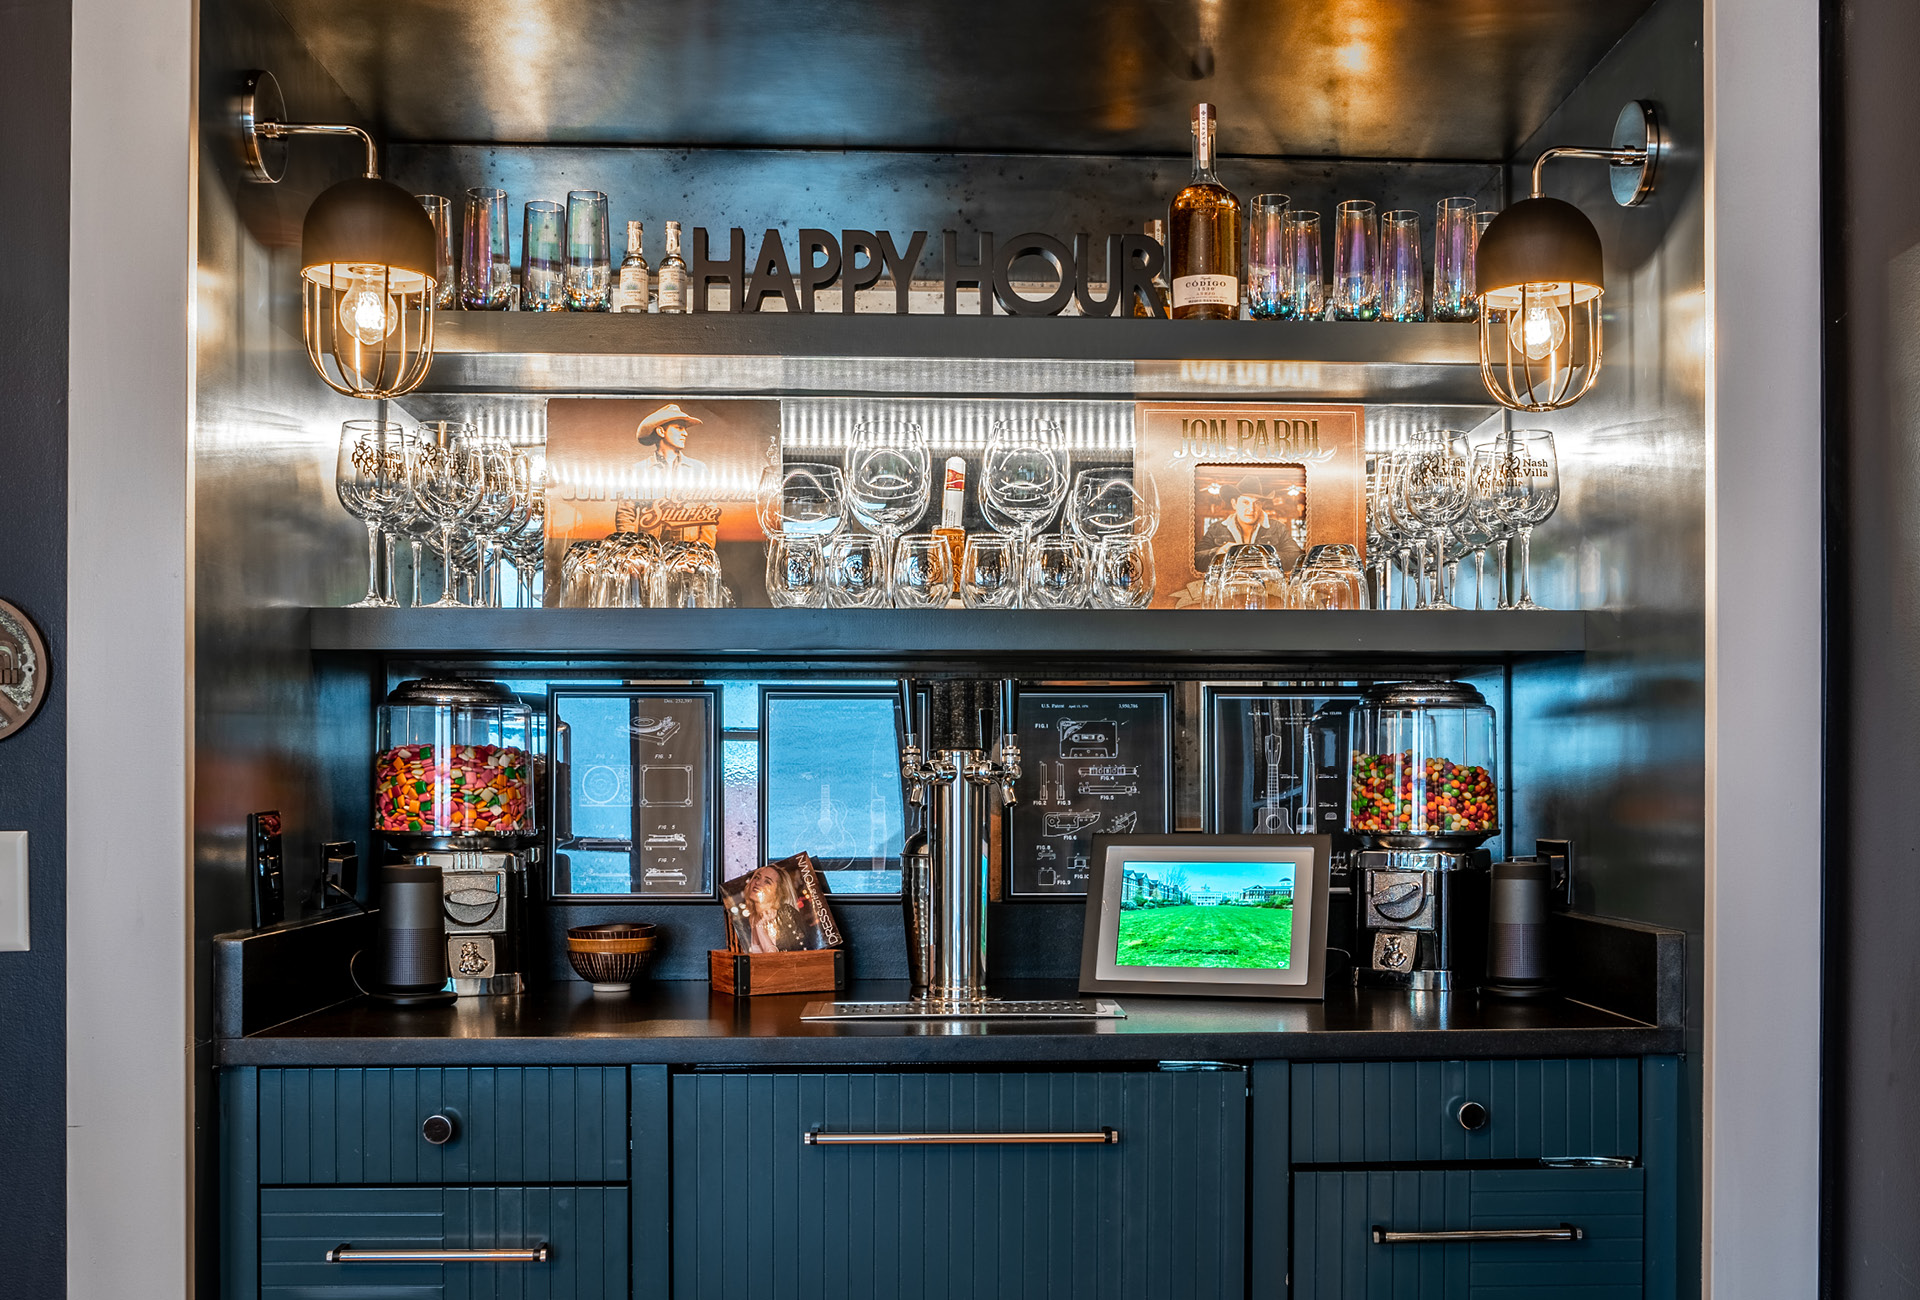 A bar with whiskey, wine, and hookups for a beer keg